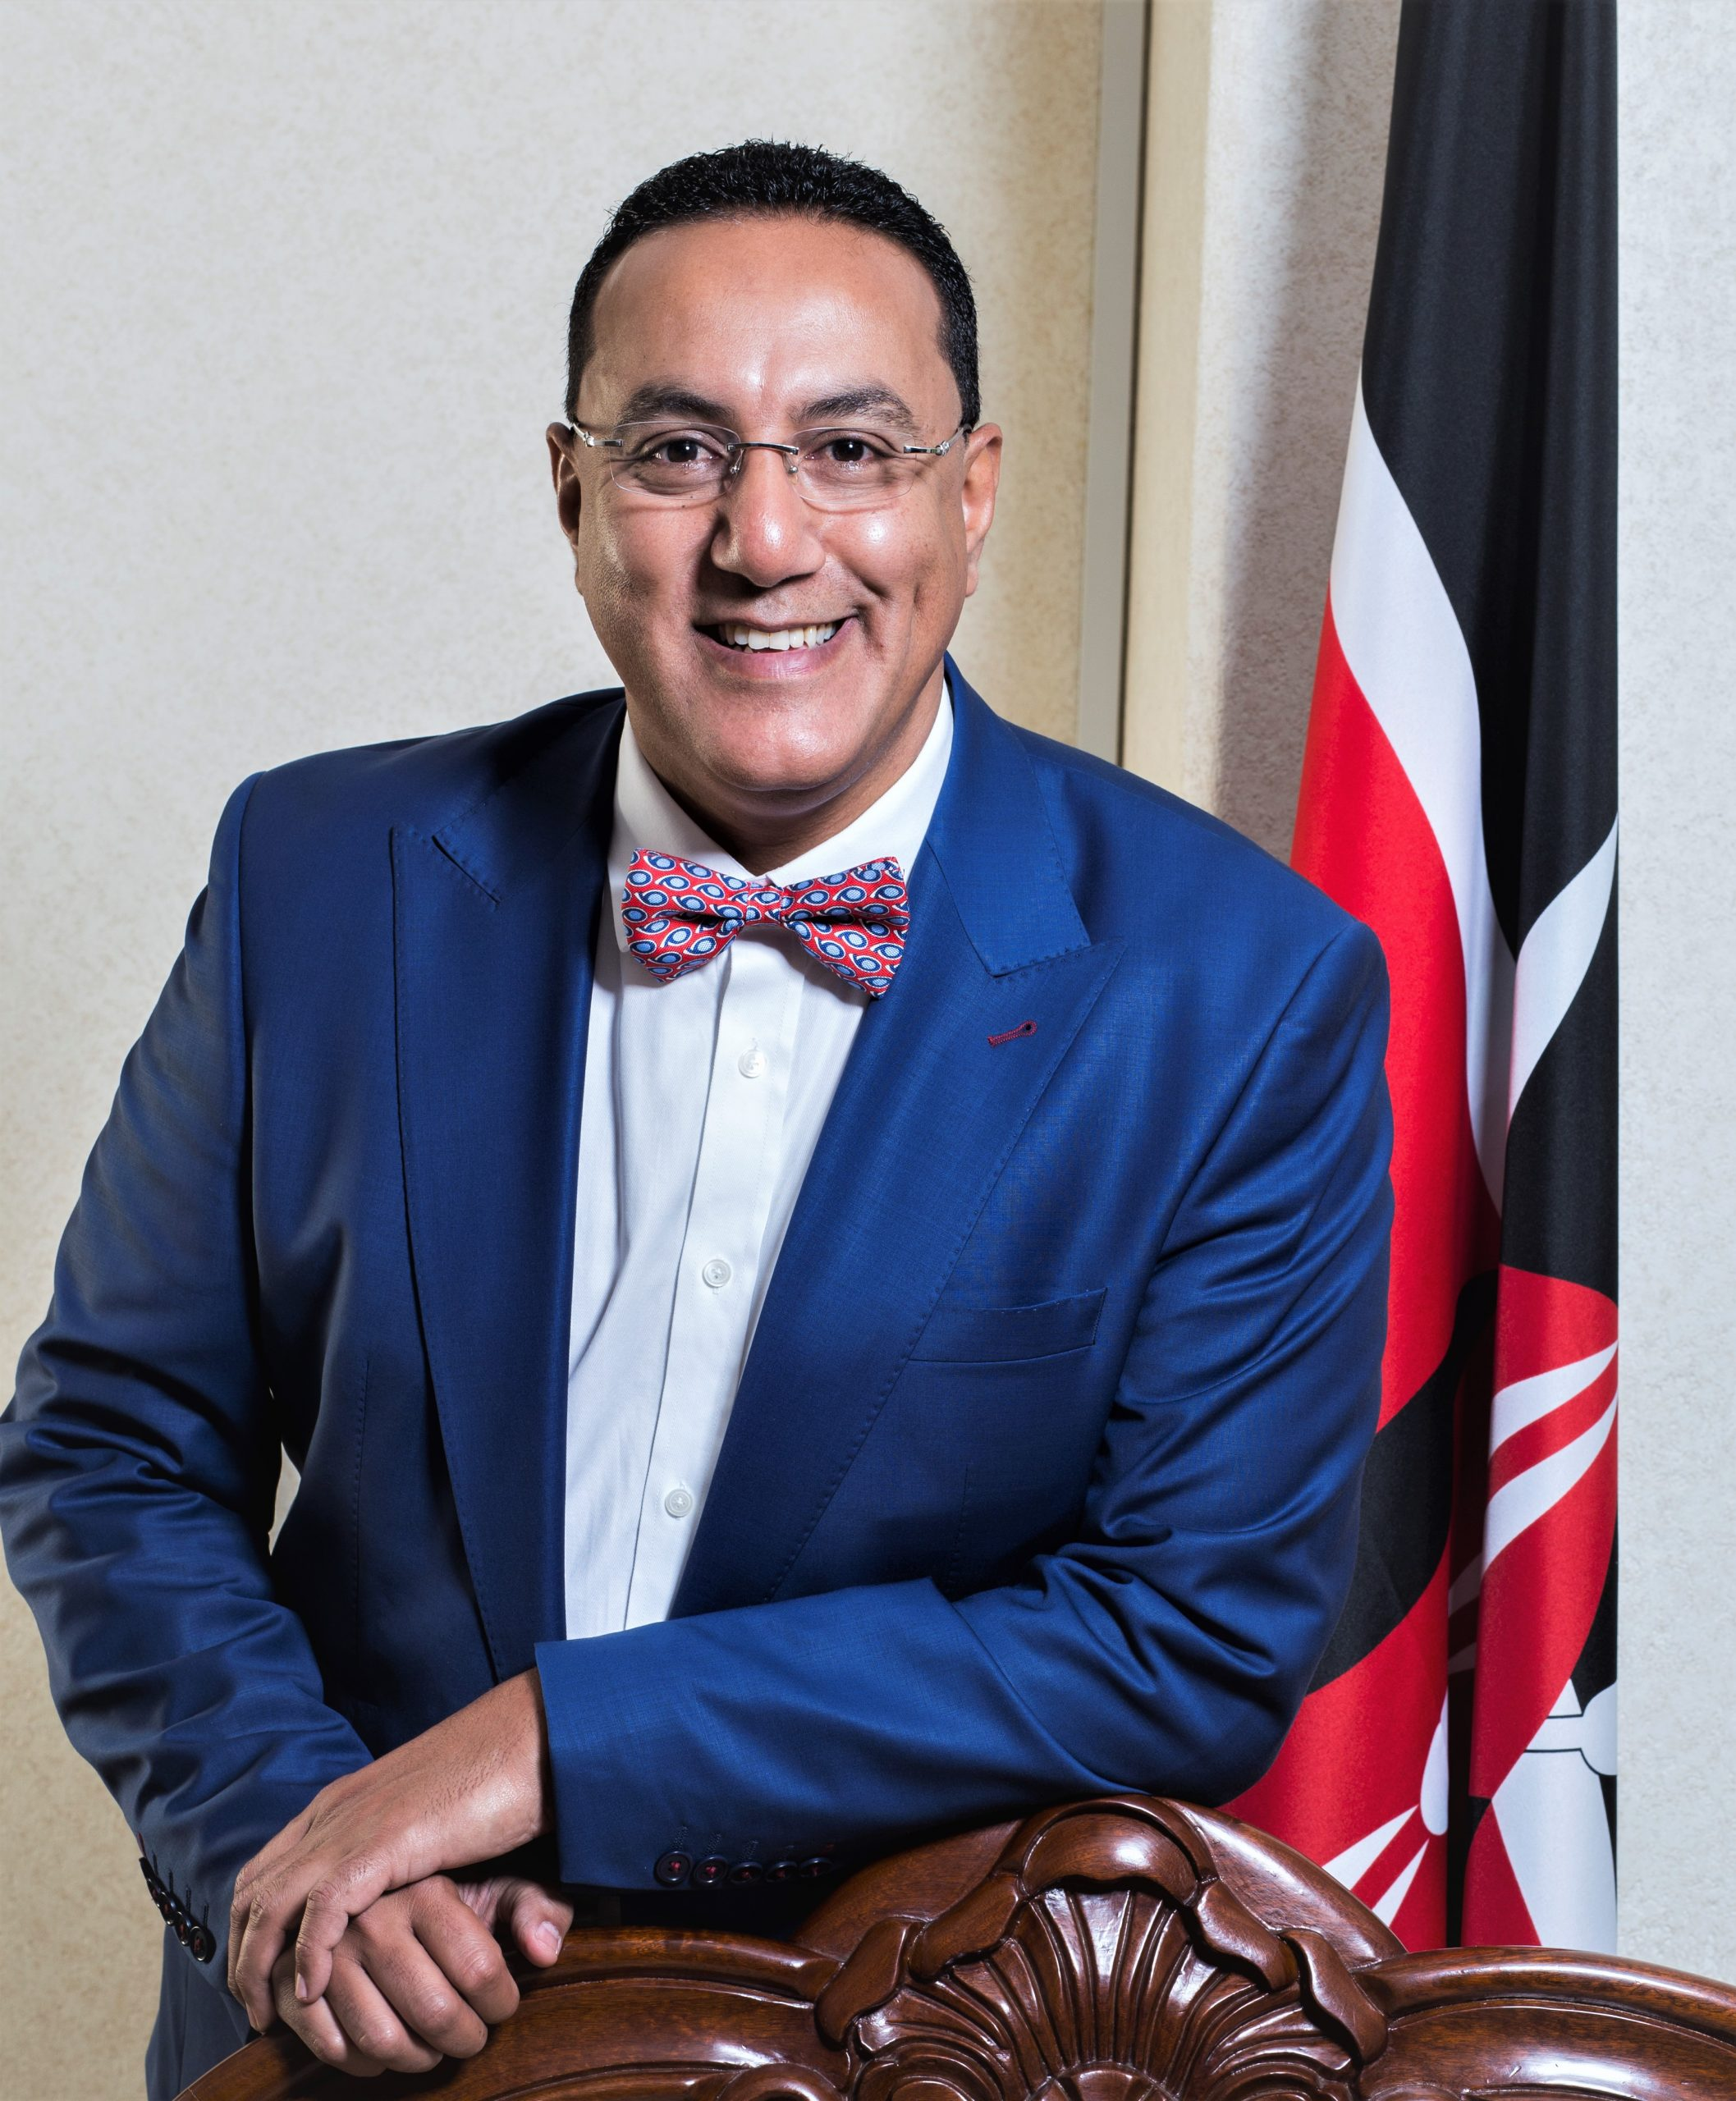 MINISTRY OF TOURISM AND WILDLIFE-KENYA, H.E. Hon. Najib Balala, Nairobi, Kenya